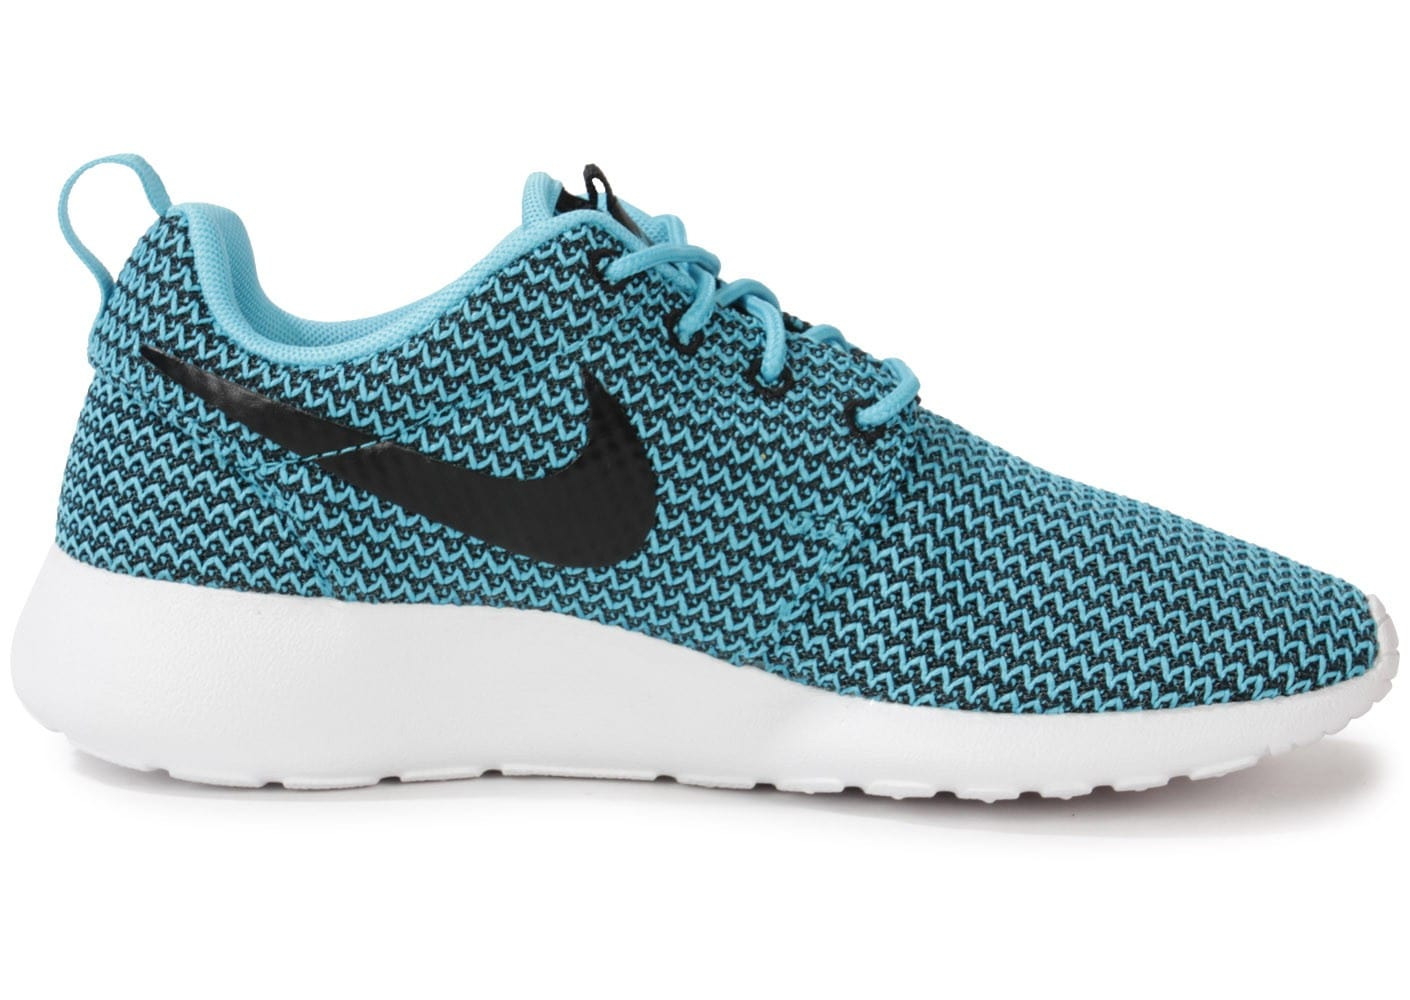 sale retailer 9f0d5 b78c3 ... Chaussures Nike Roshe Run Clear Water vue dessous ...